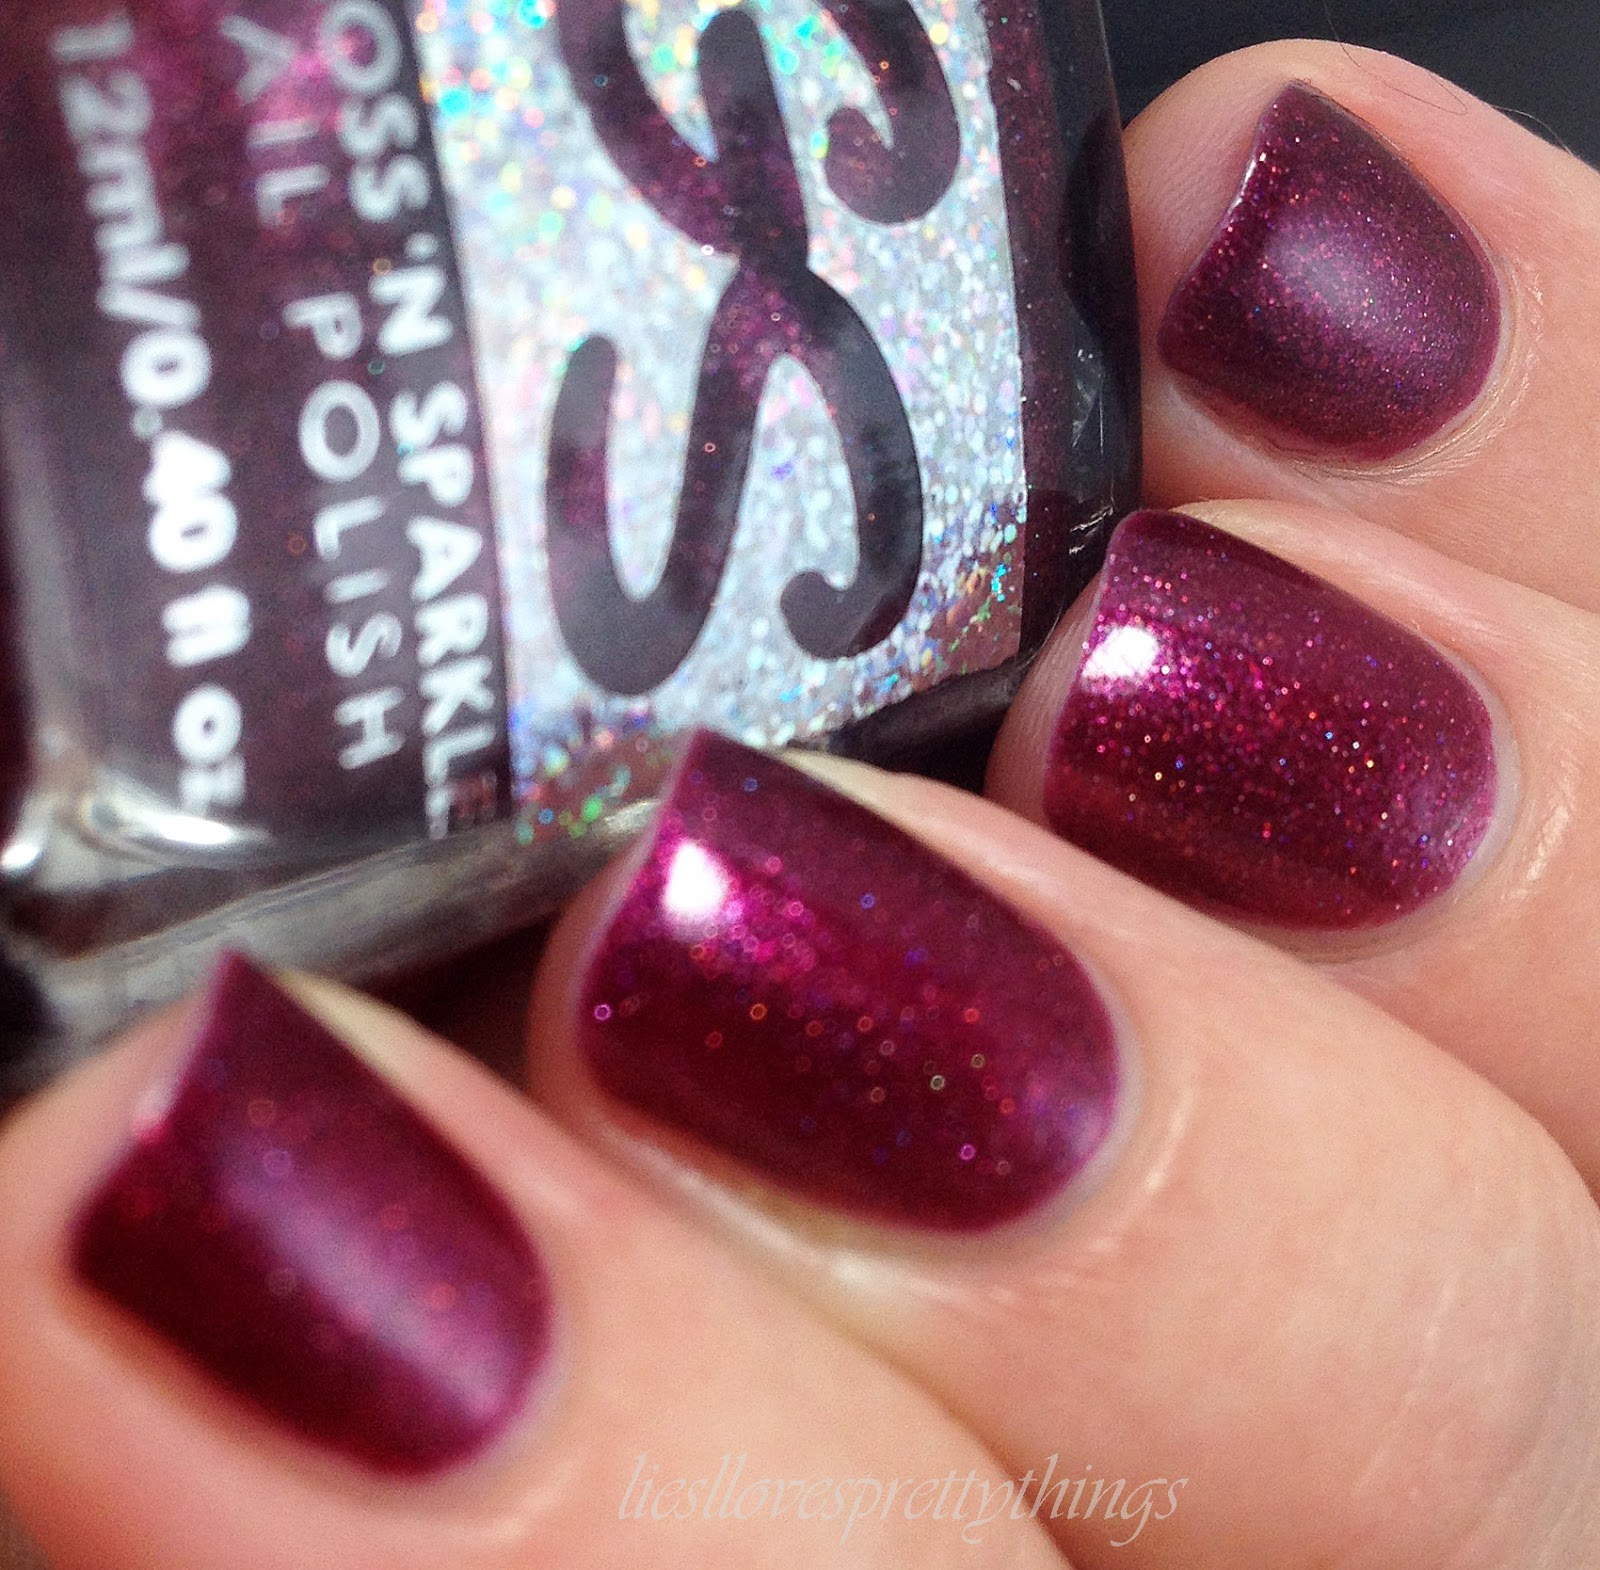 Gloss N Sparkle Harlot swatch and review